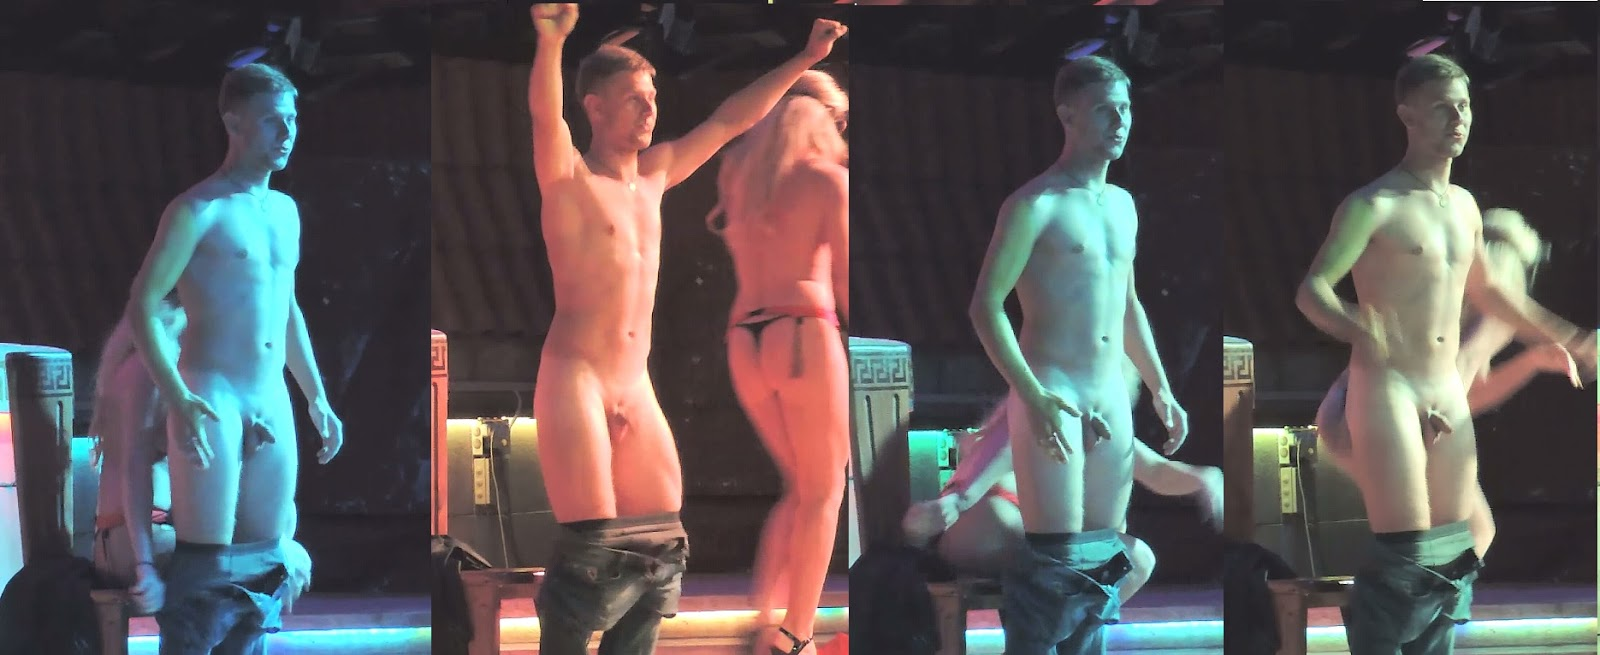 asian guys stripped naked on stage